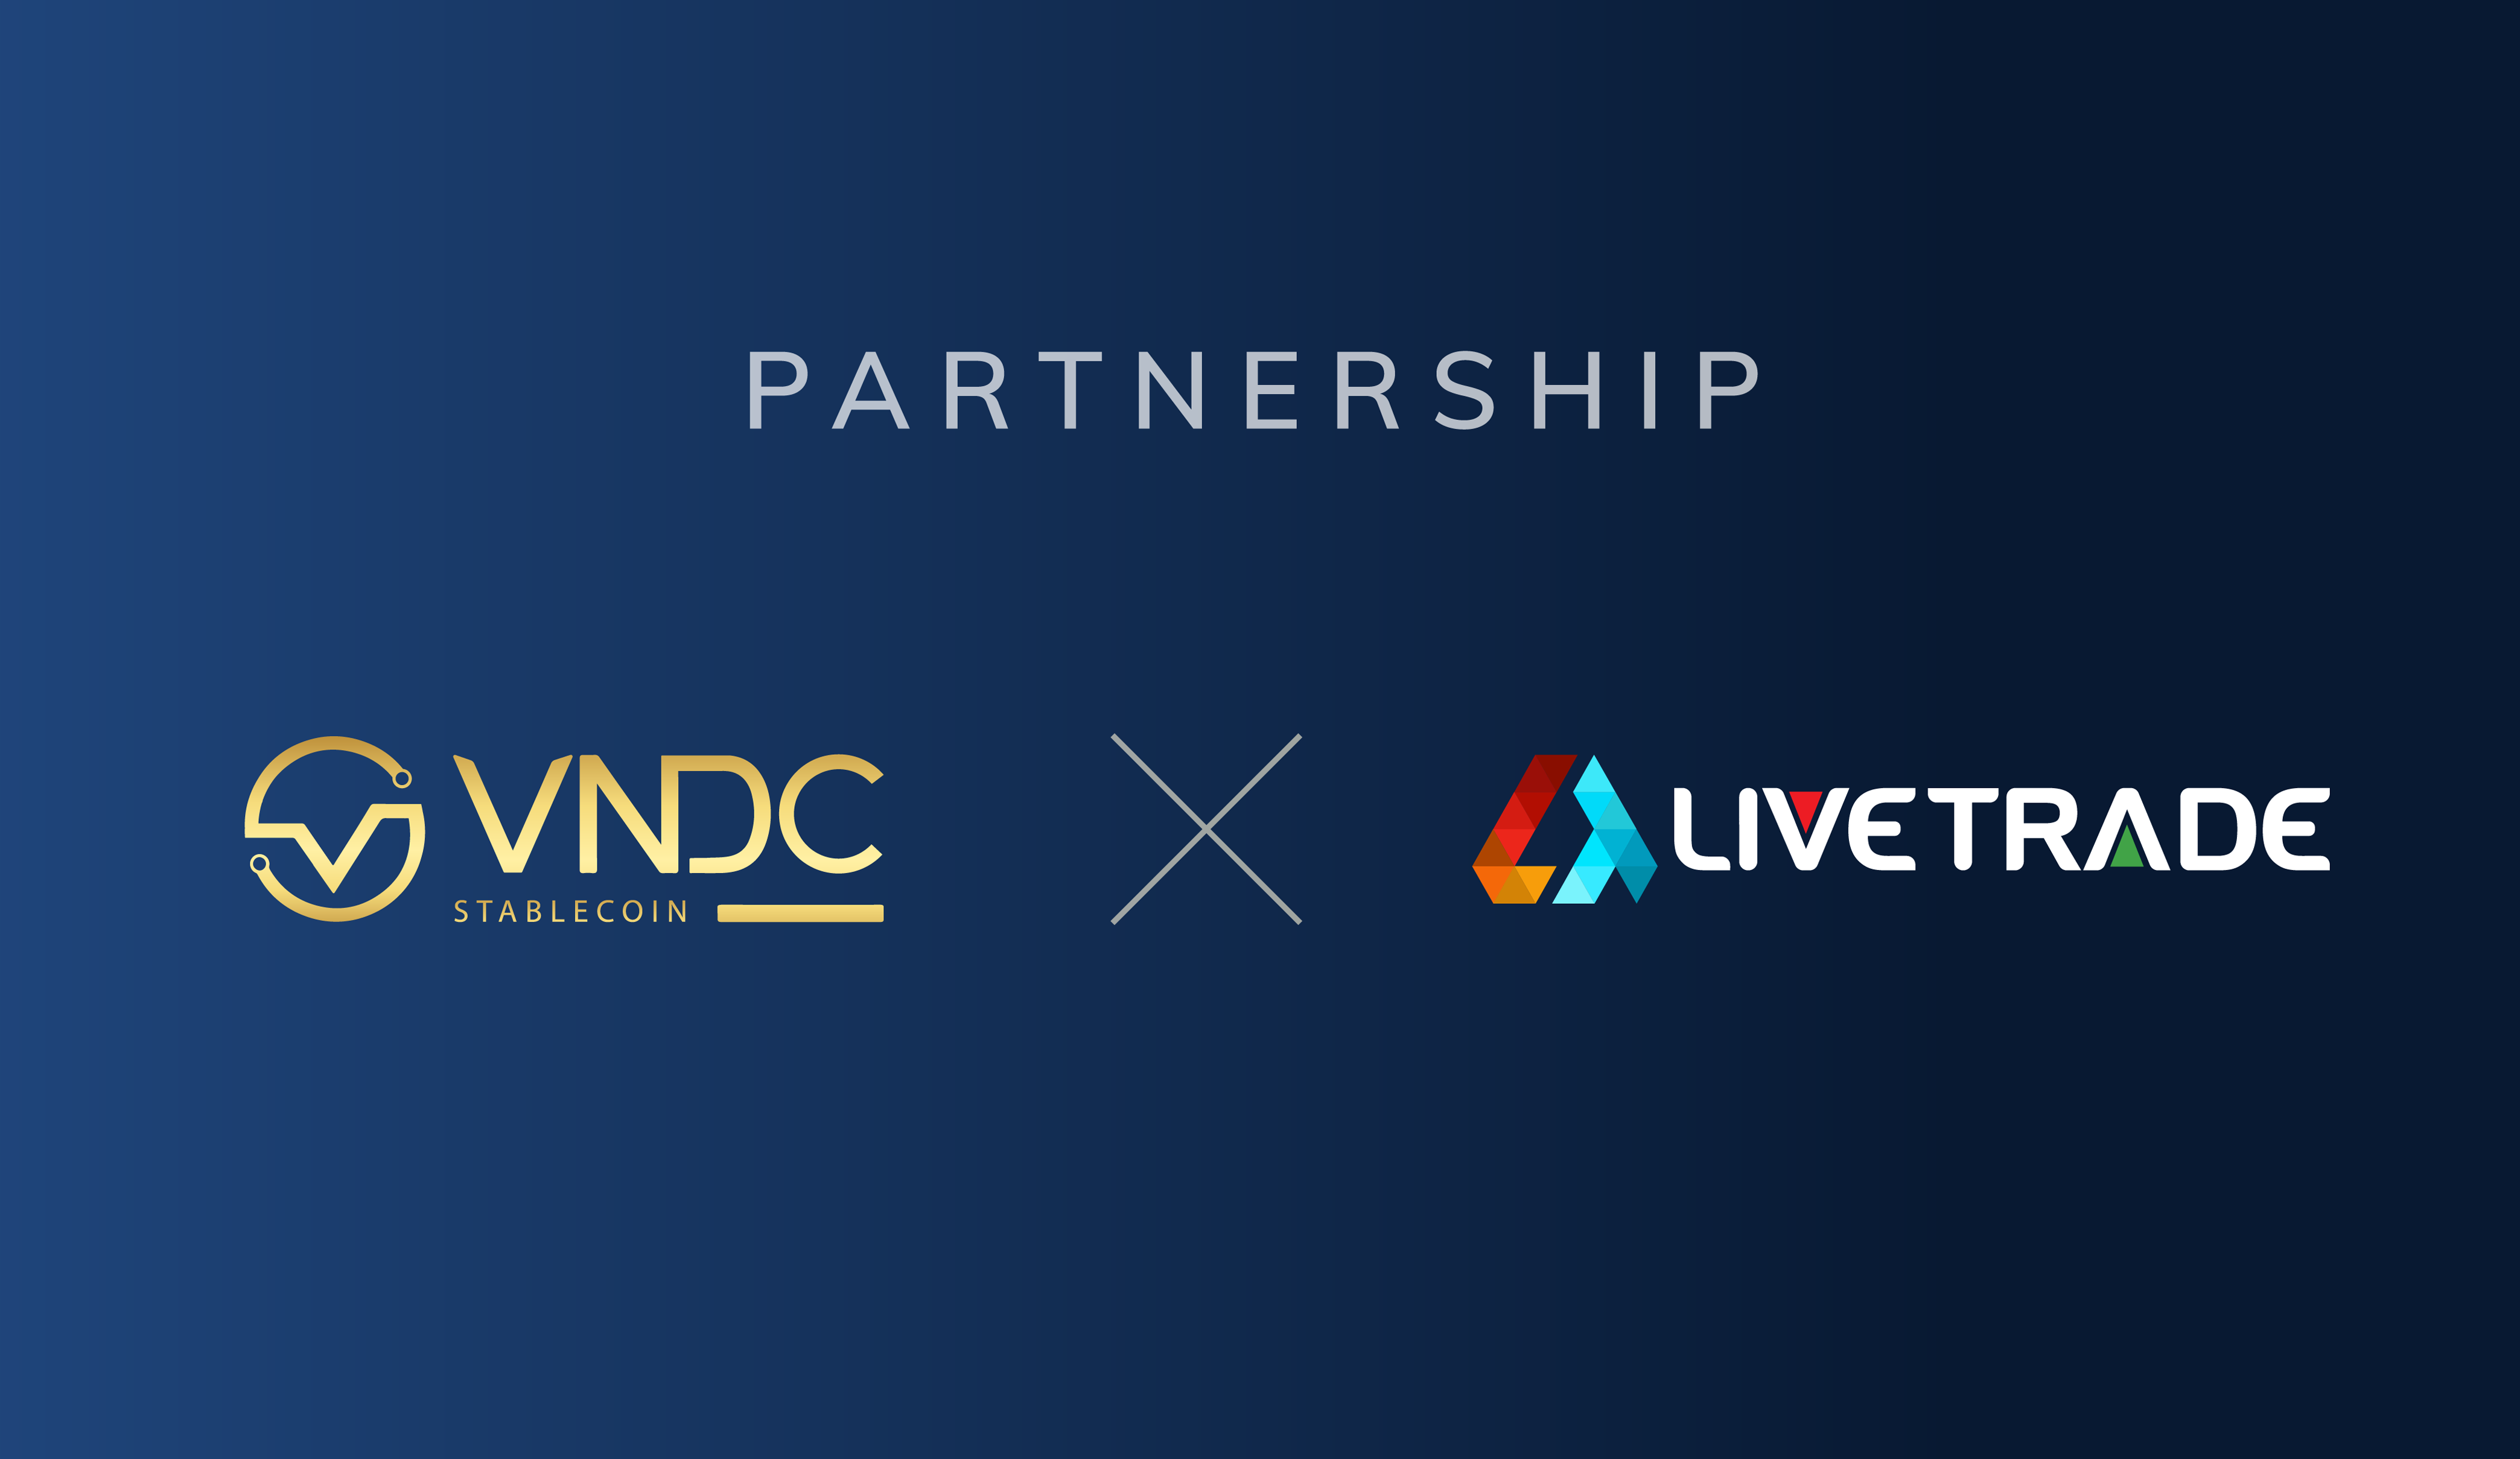 VNDC x LiveTrade: Cooperation to build a DIPO platform for the Vietnamese Community